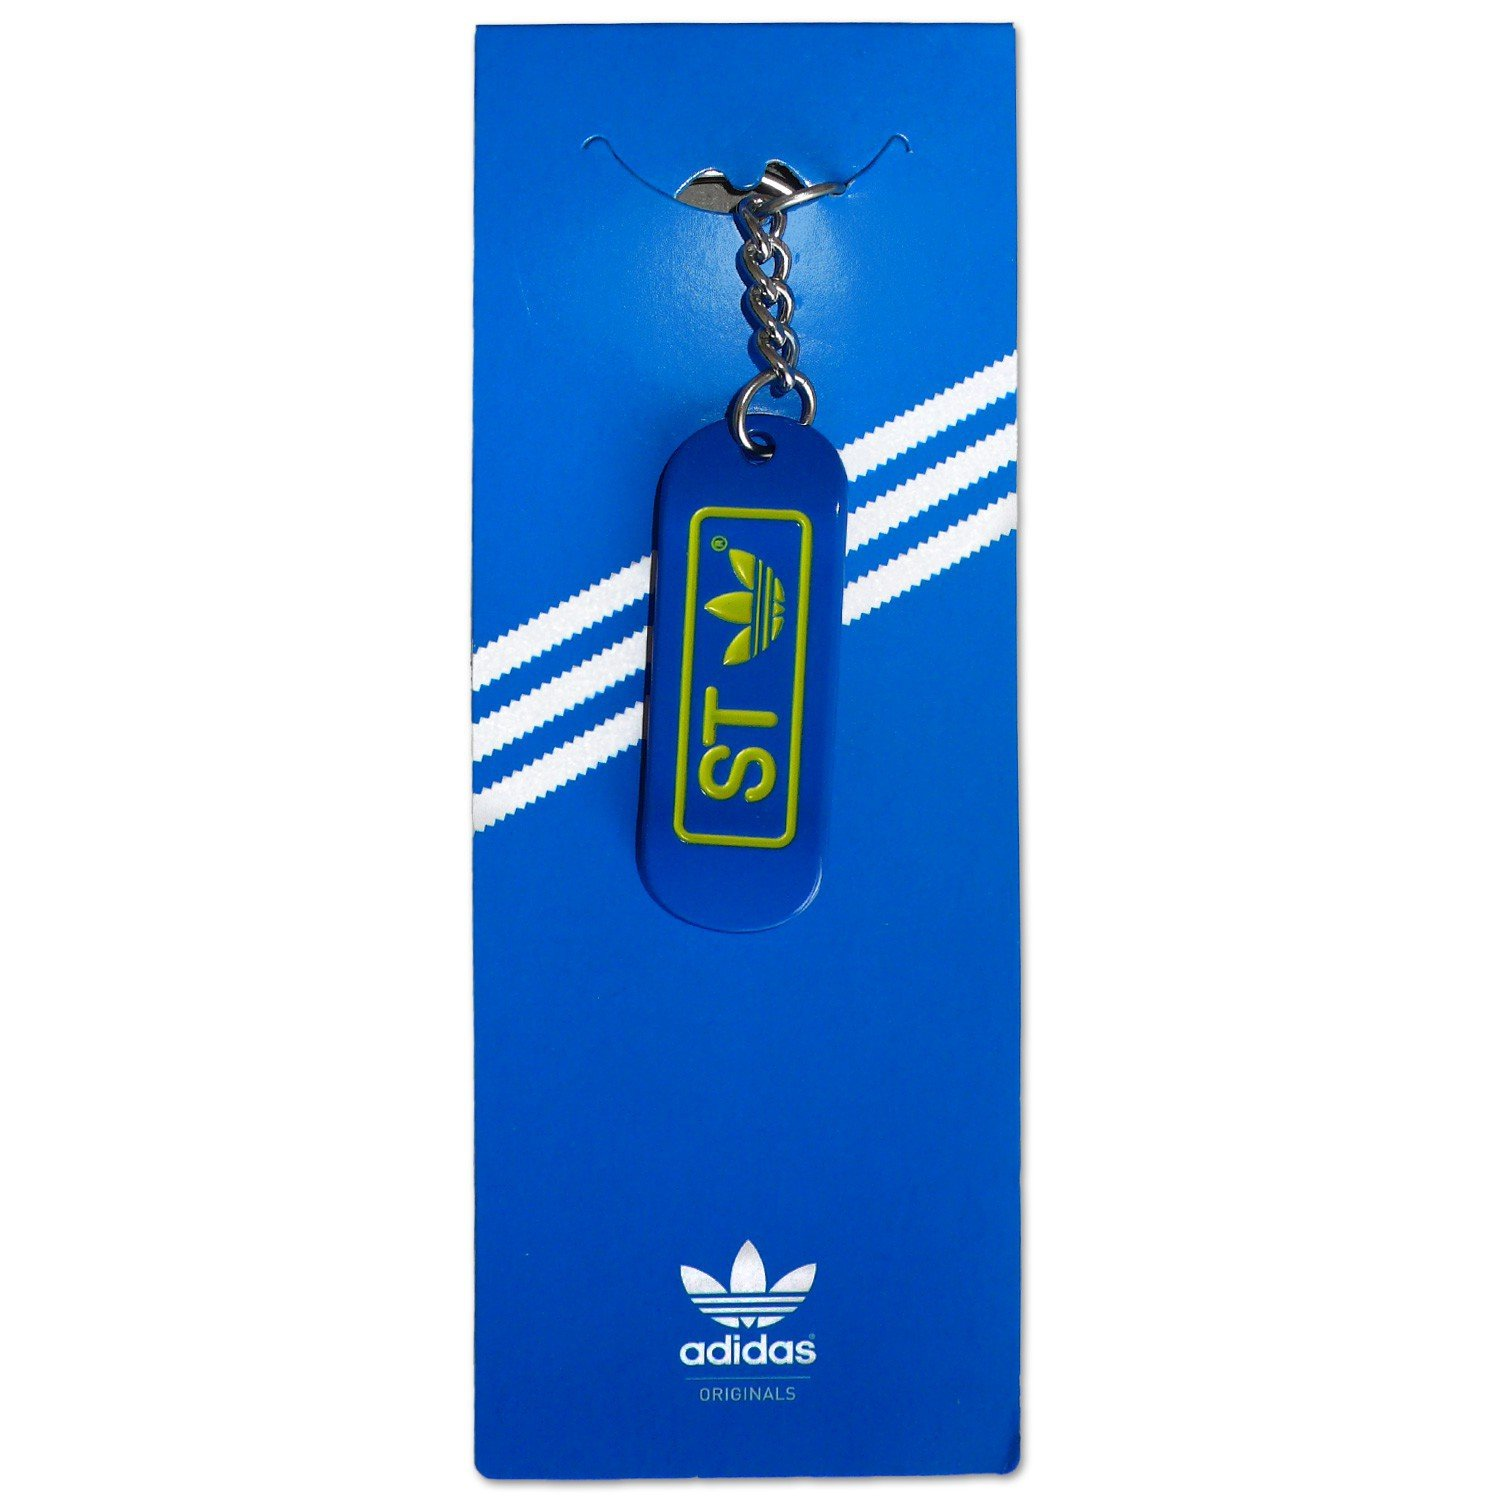 adidas originals keychain